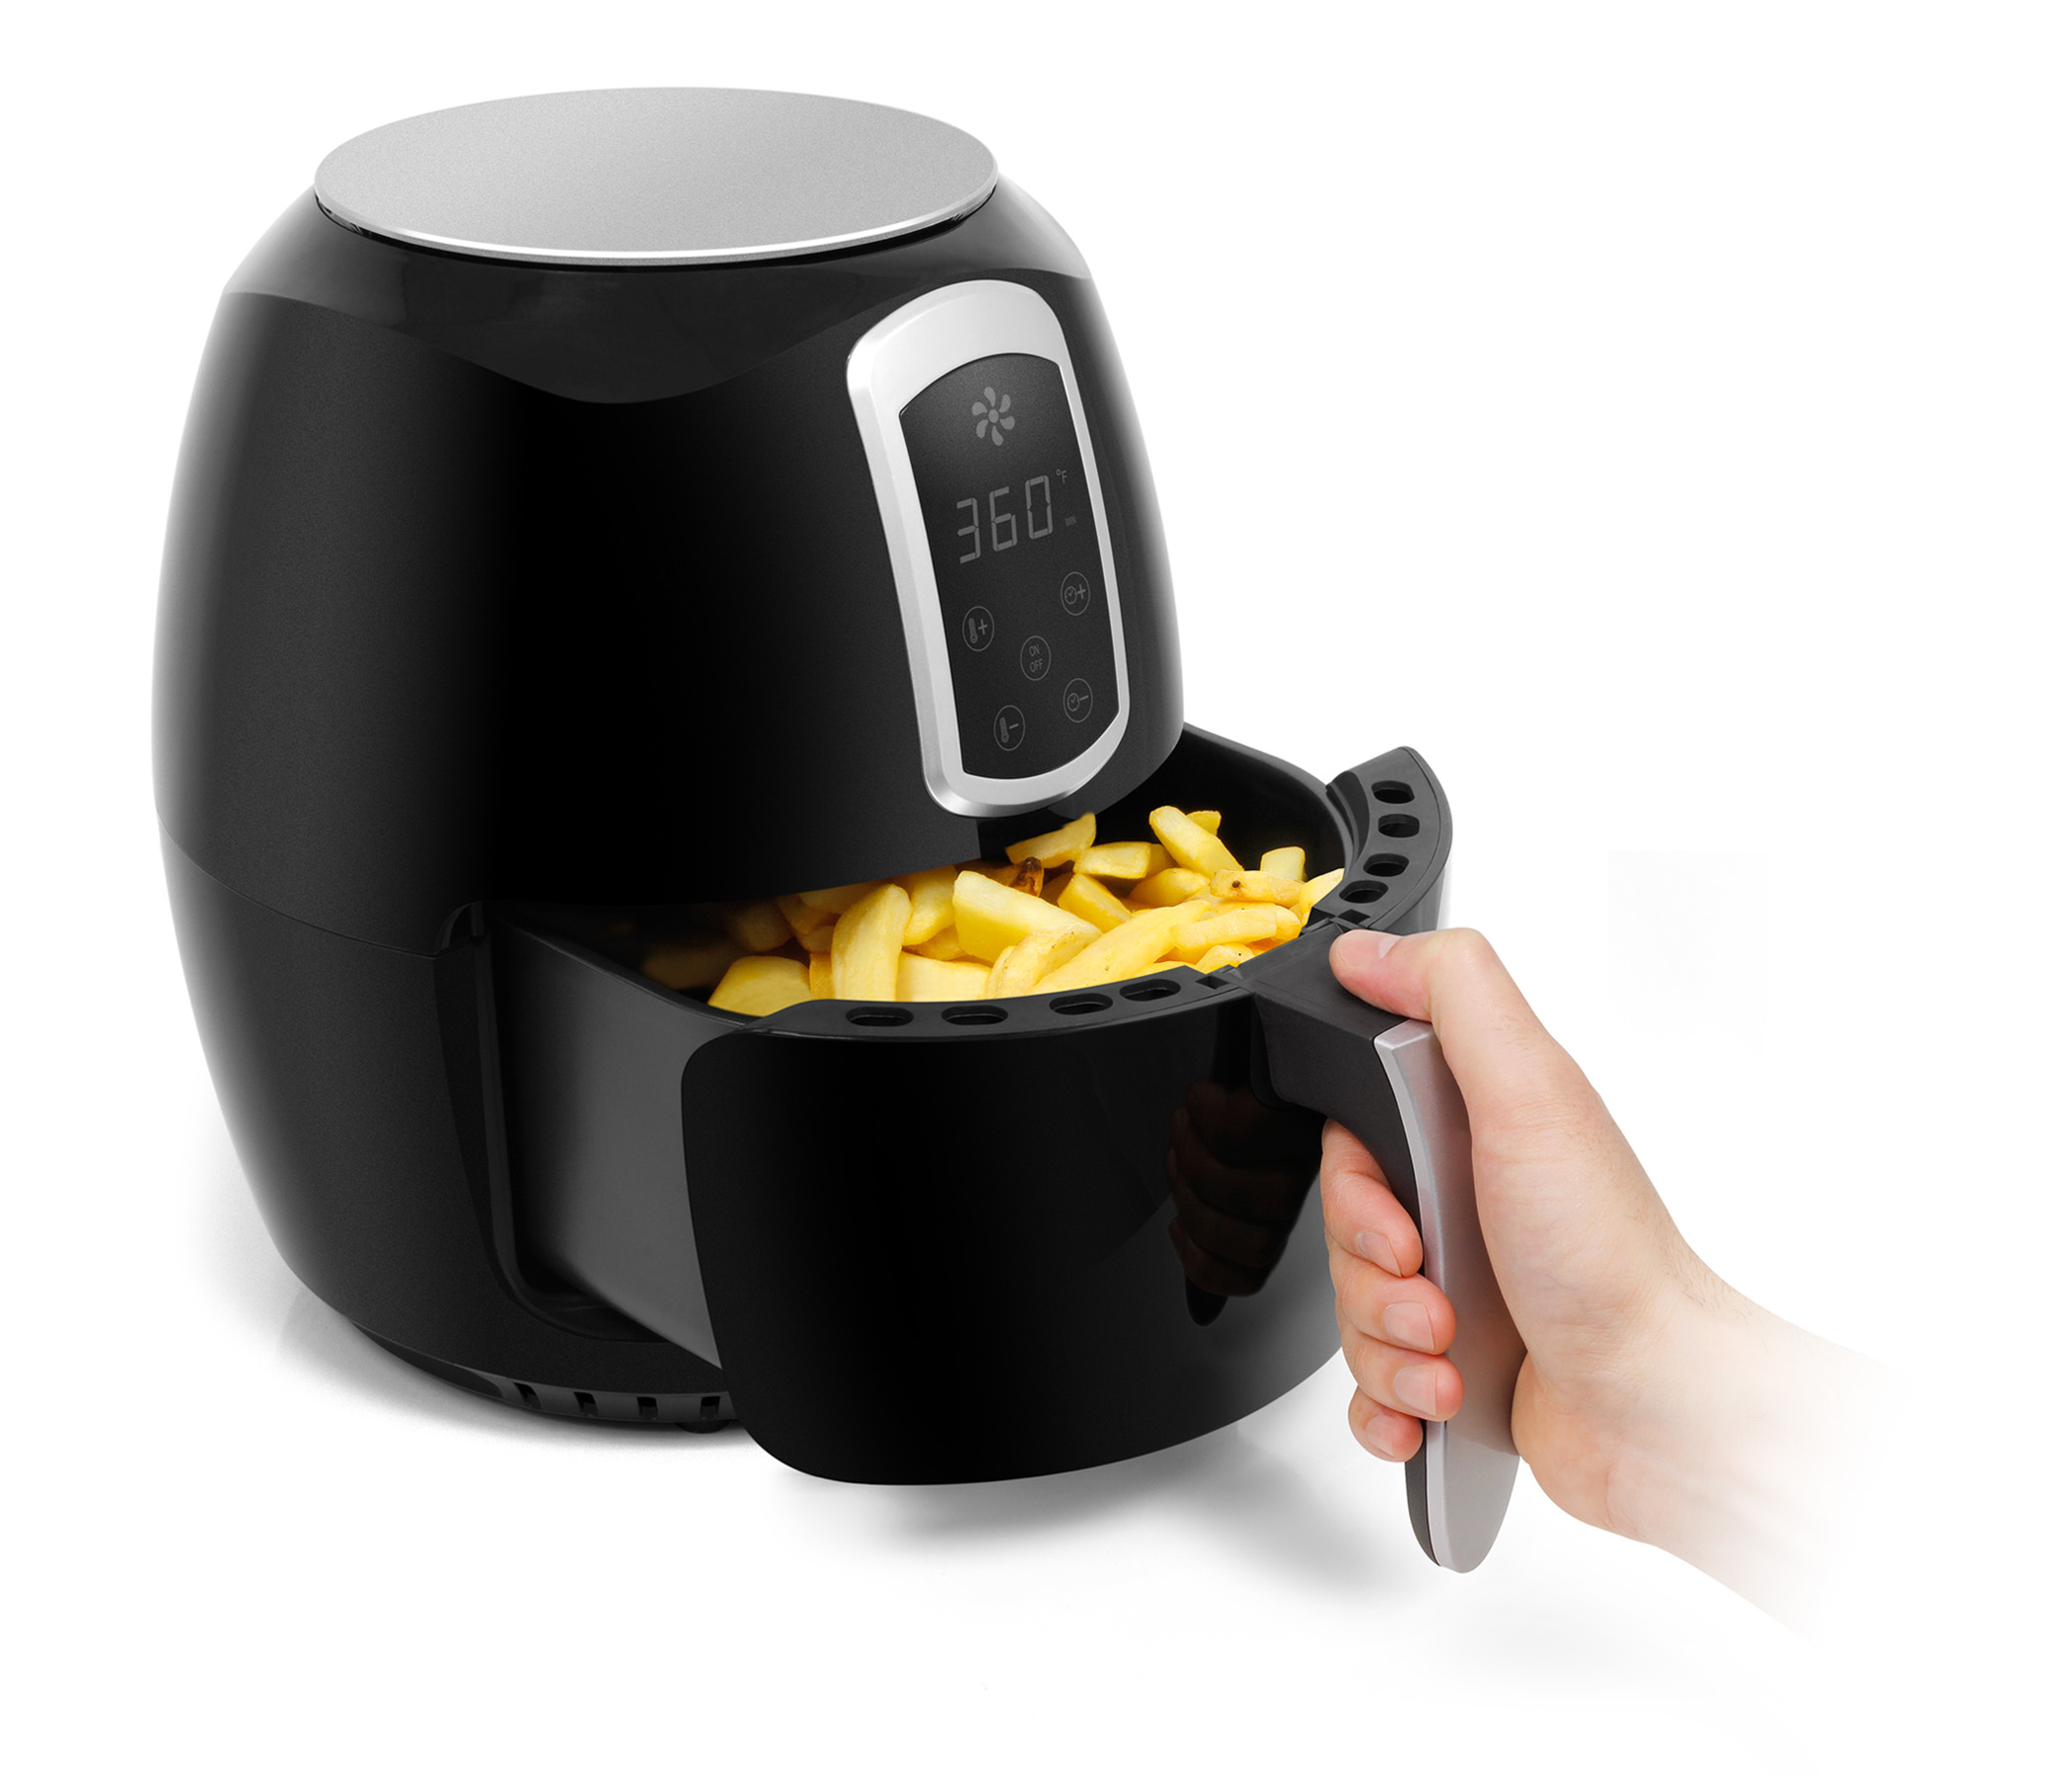 Nutri Airfry 3 6l Digital Air Fryer